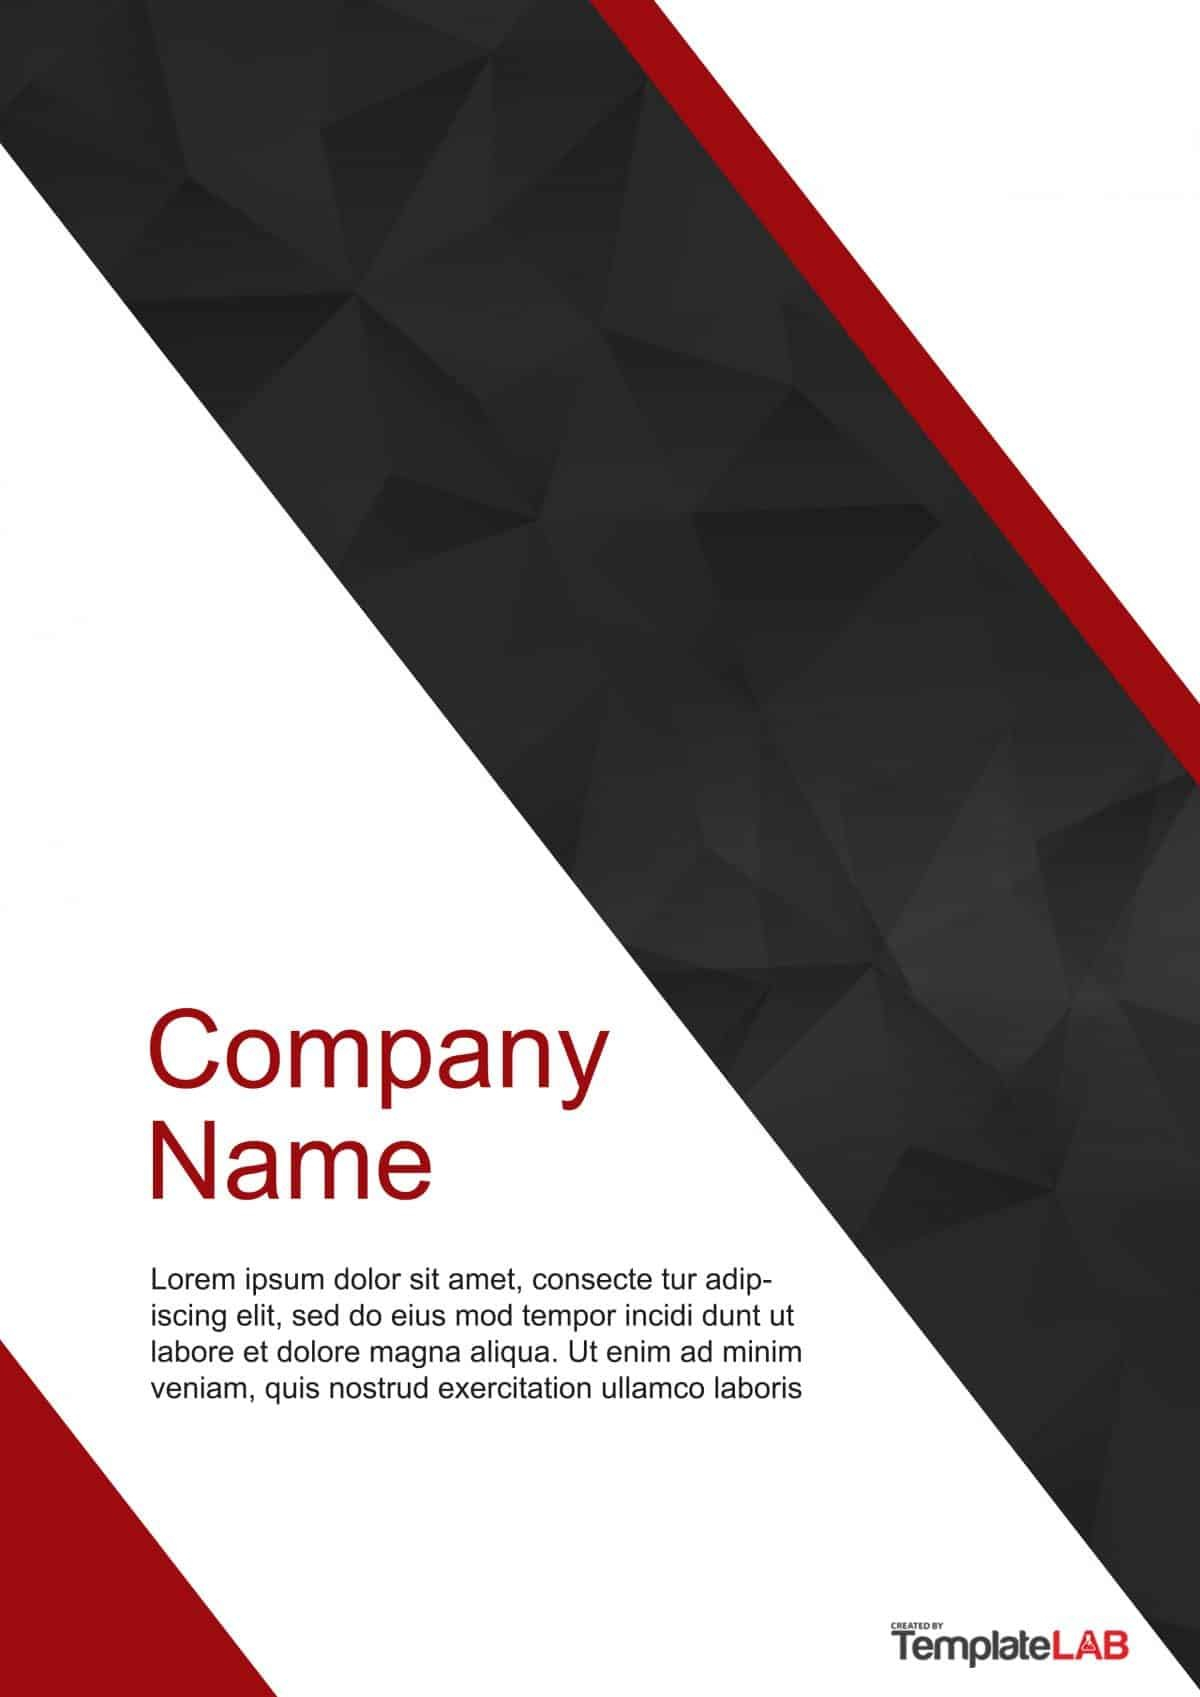 Amazing Cover Page Templates Word  Psd ᐅ Template Lab Regarding Microsoft Word Cover Page Templates Download